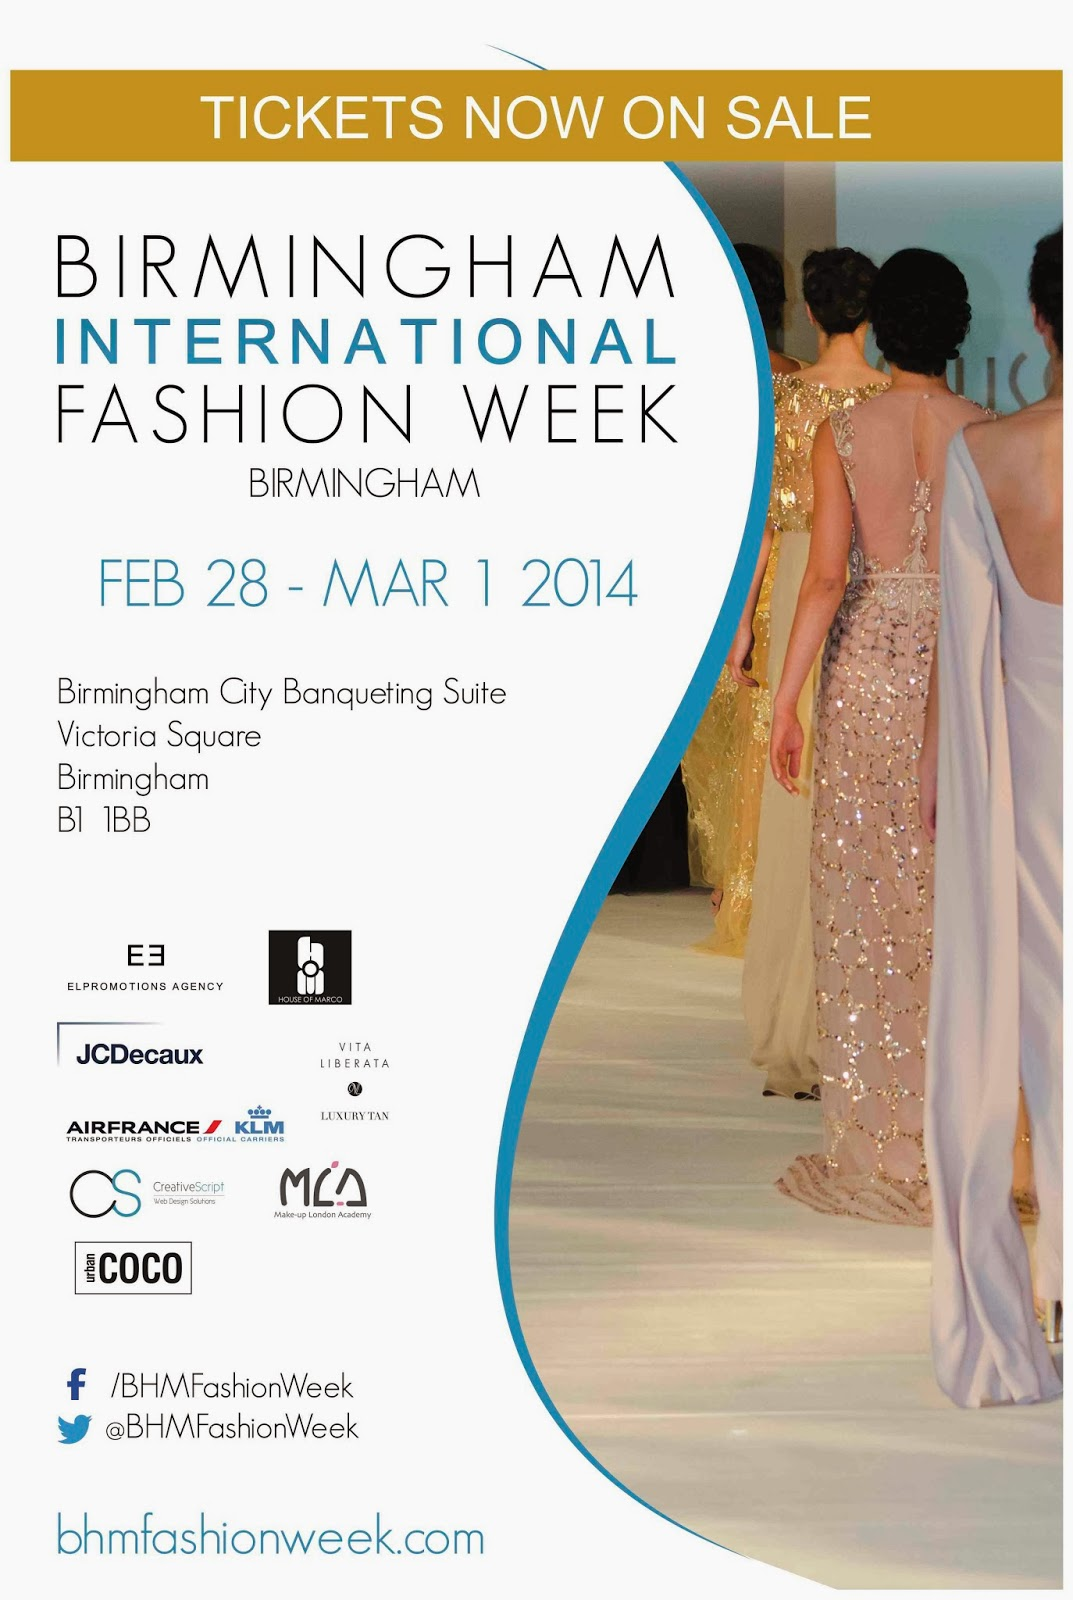 London Fashion Week Festival Ticket 10